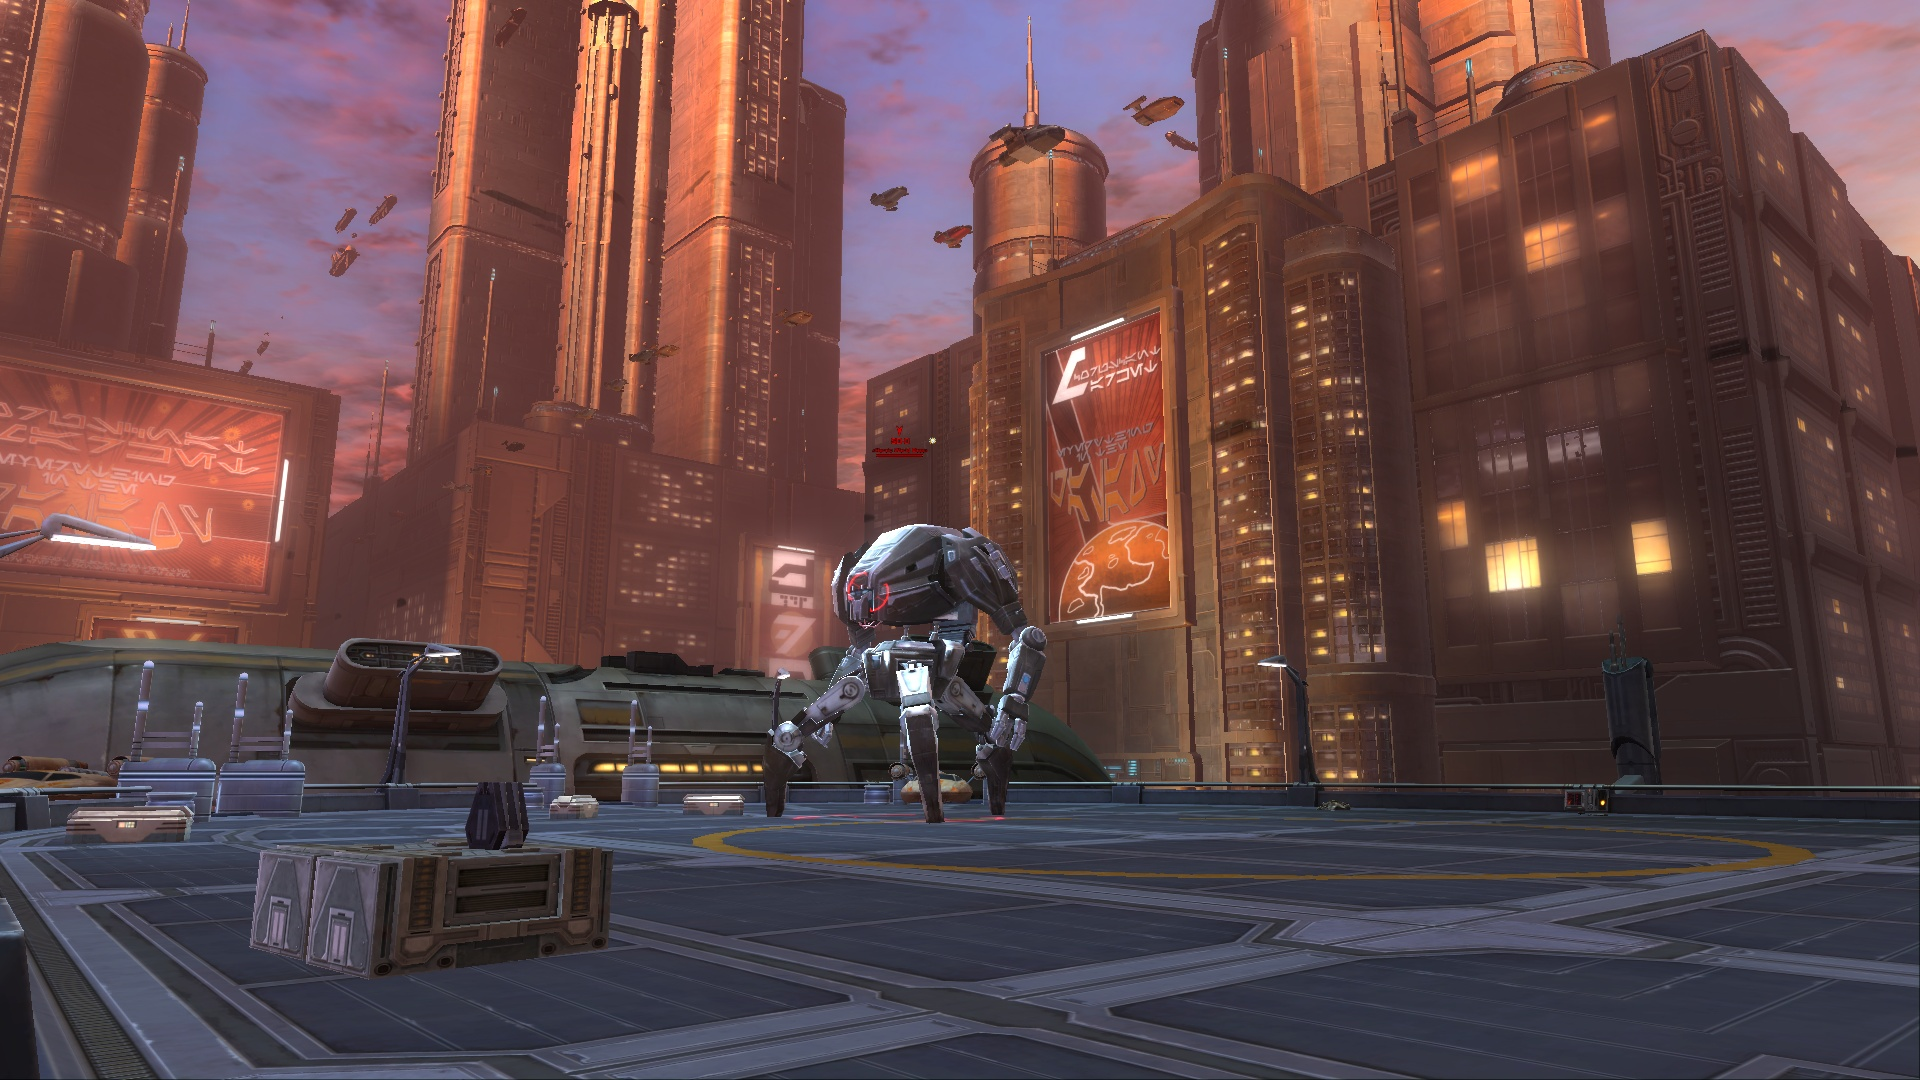 ddmsrealm-star-wars-tor-coruscant-world-boss